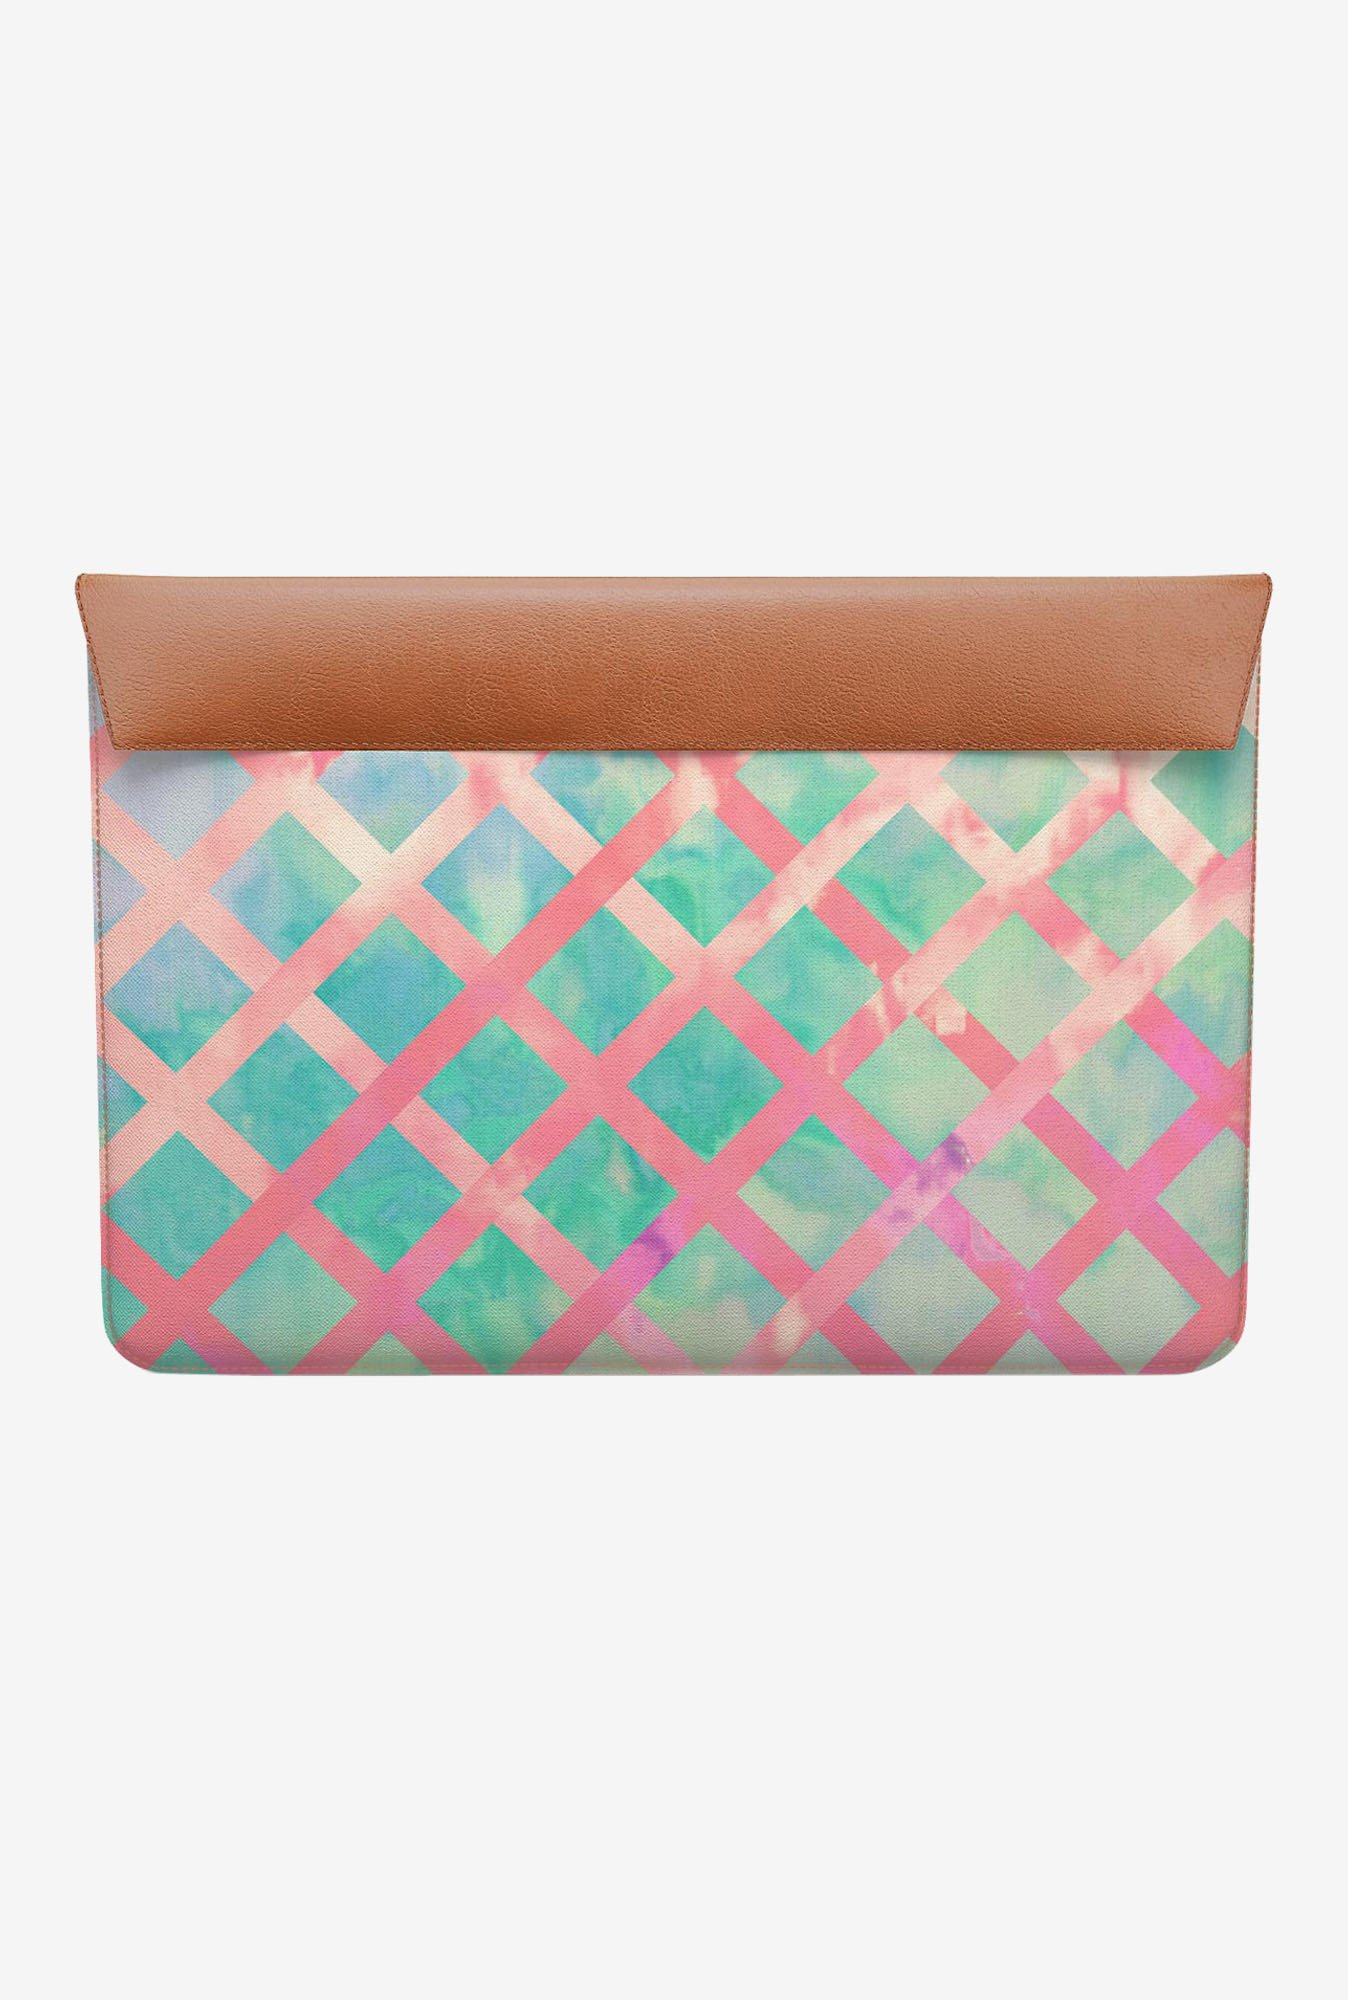 DailyObjects Retro Lattice MacBook Air 11 Envelope Sleeve